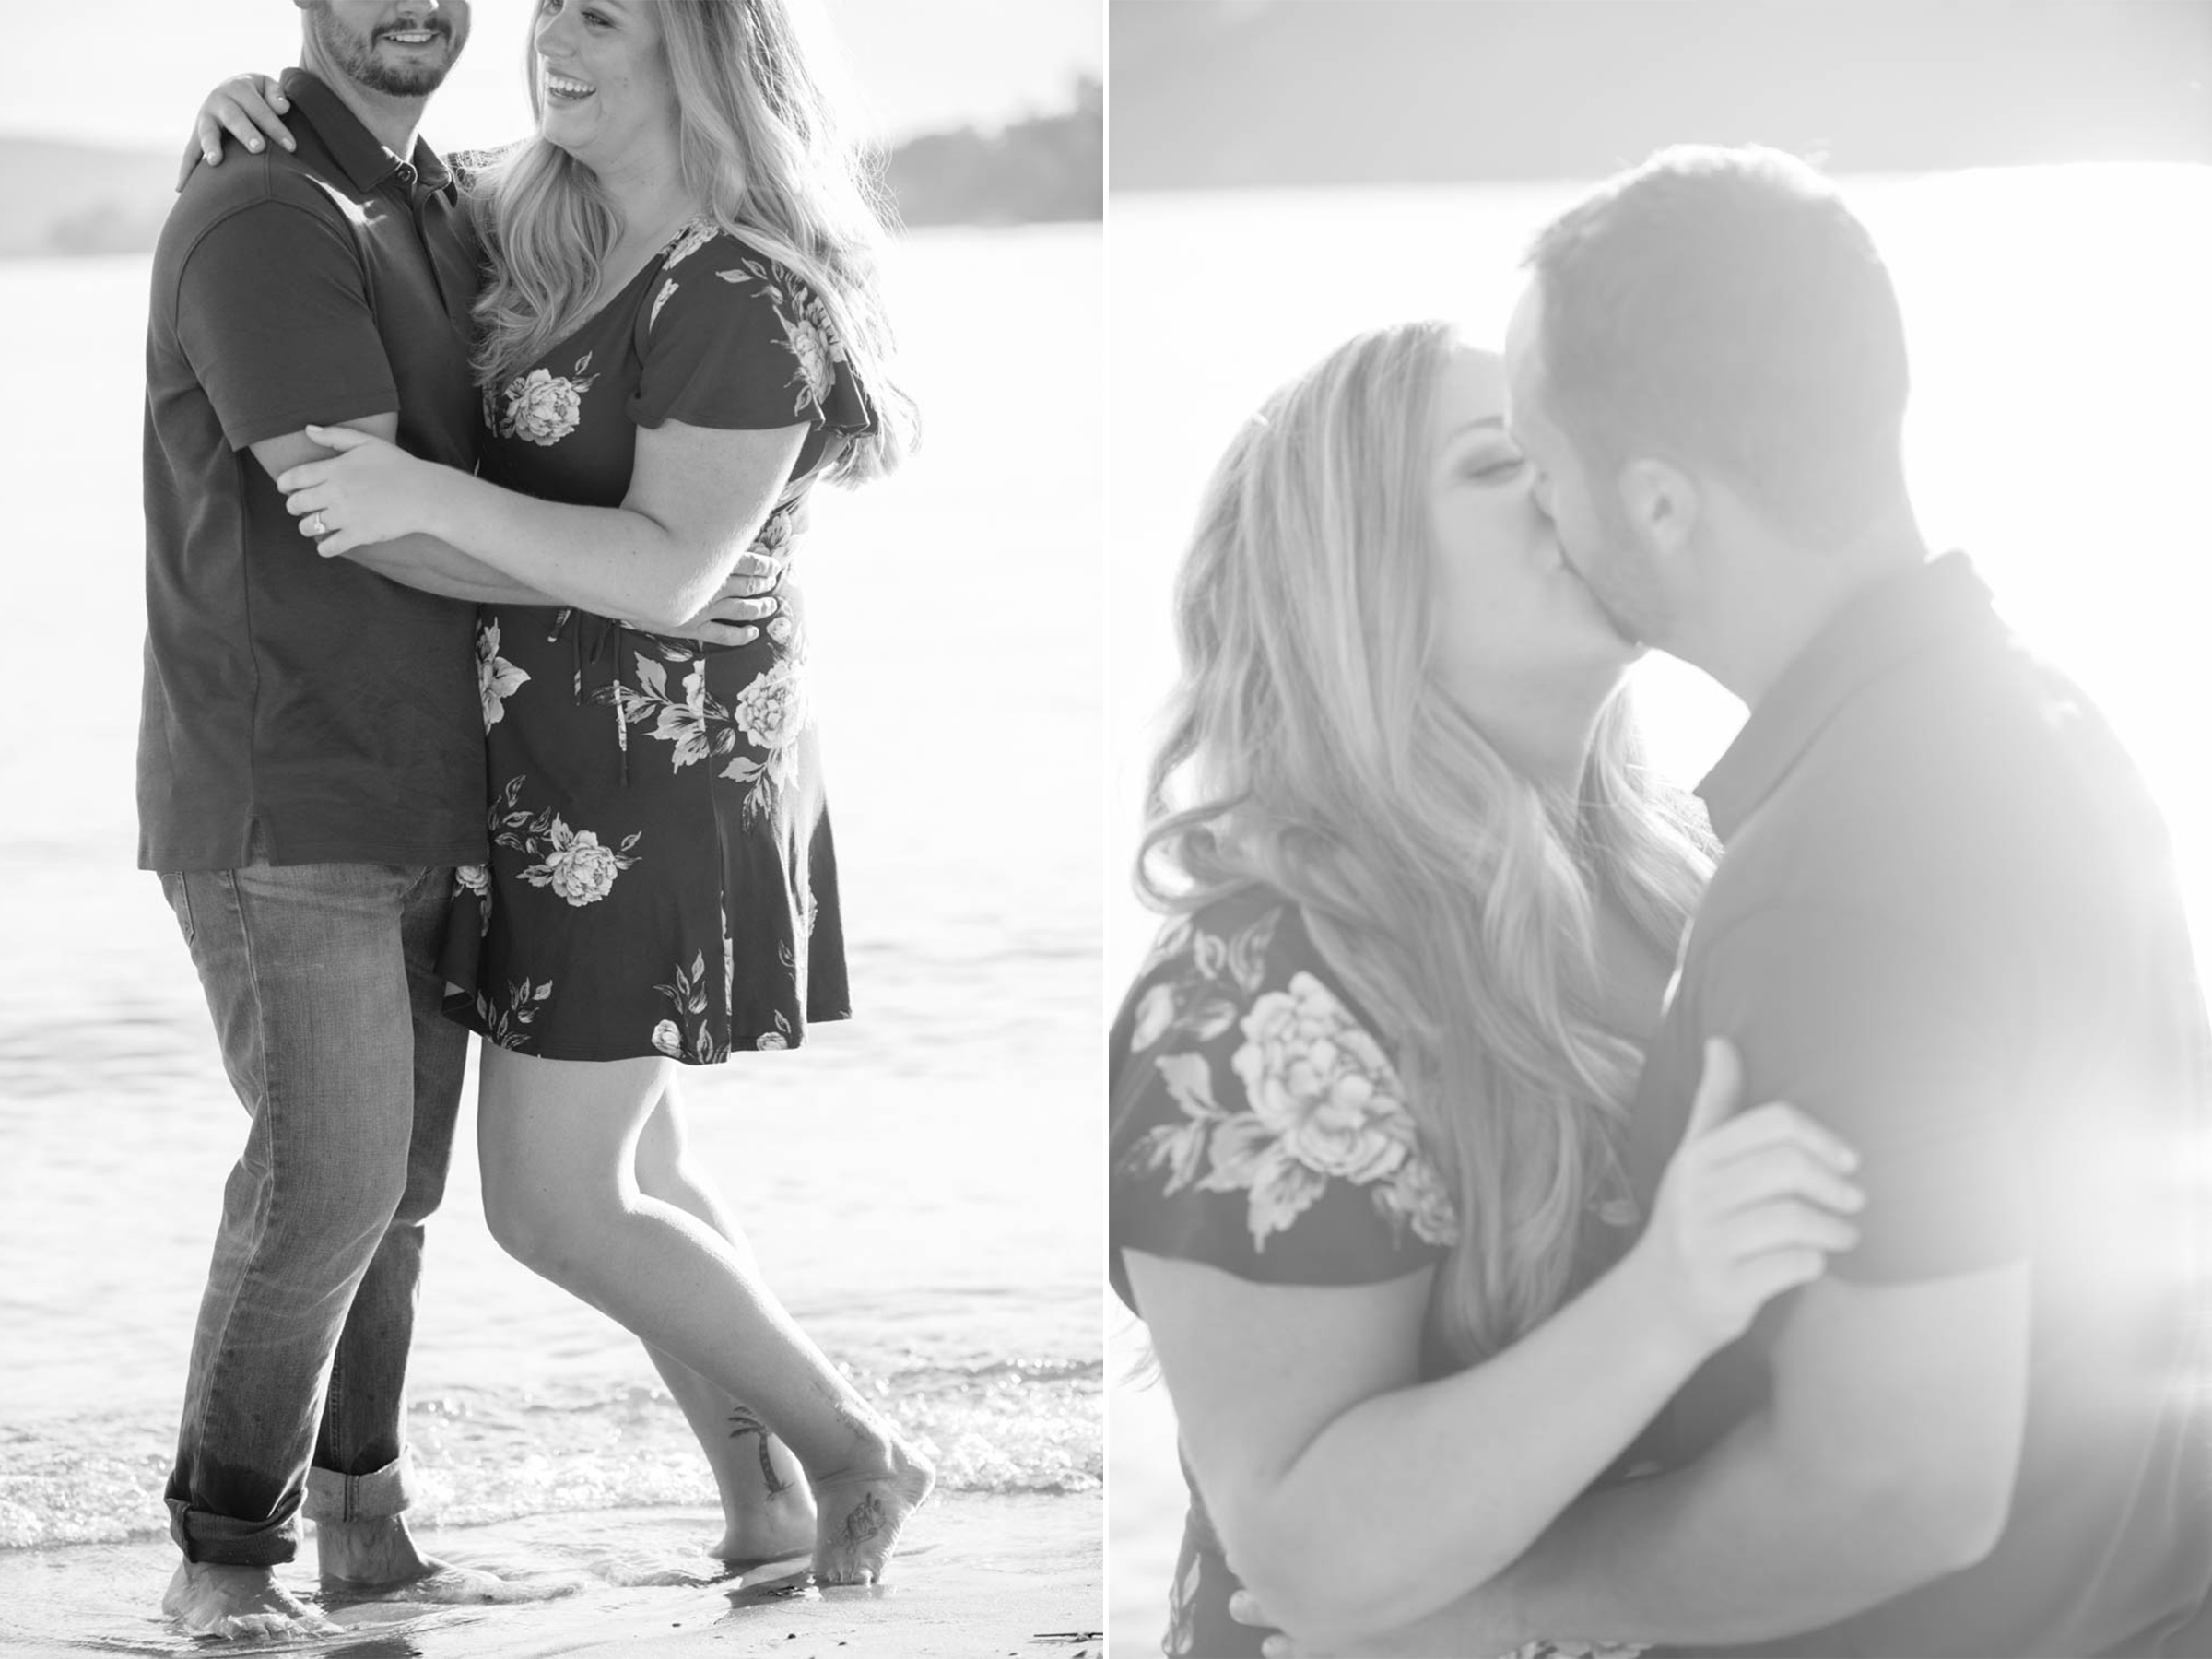 Lake Mohawk Engagement Session- Sunset by the Lake- Sparts New Jersey-Olivia Christina Photo.jpg